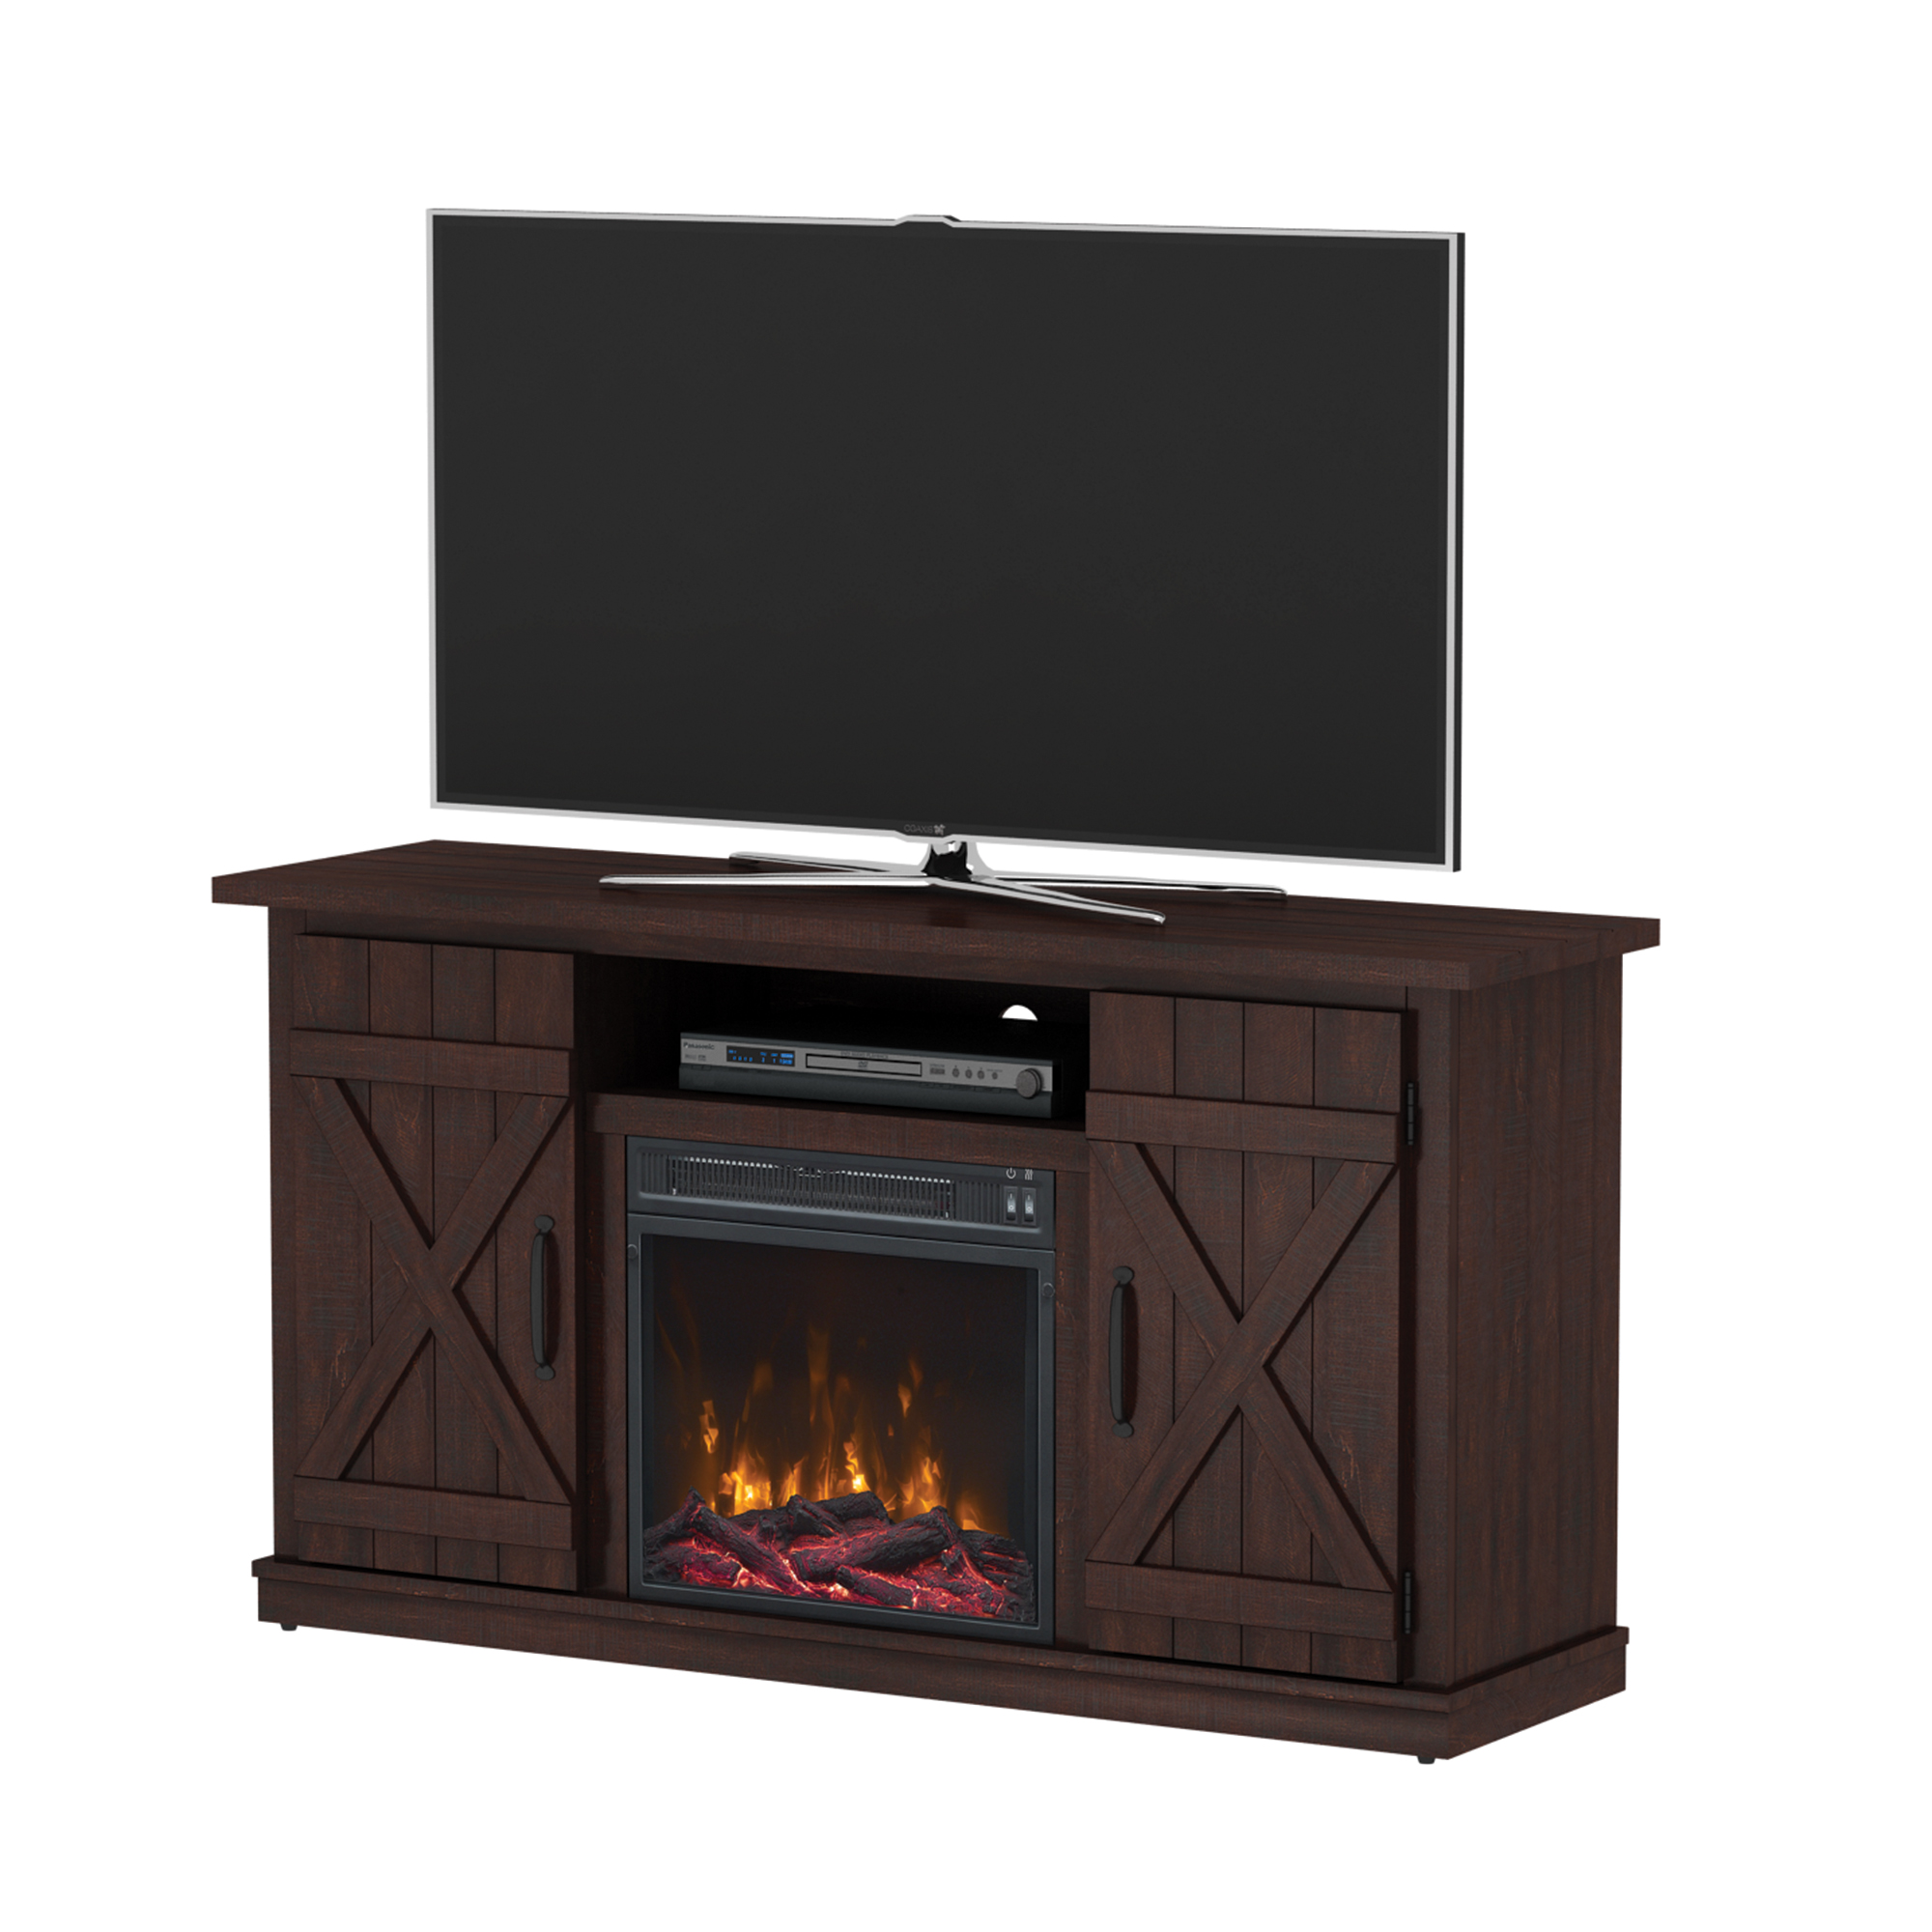 "Terryville Saw Cut Espresso Fireplace Tv Stand For T Vs Up To 55"" by Luxe By Tsi"